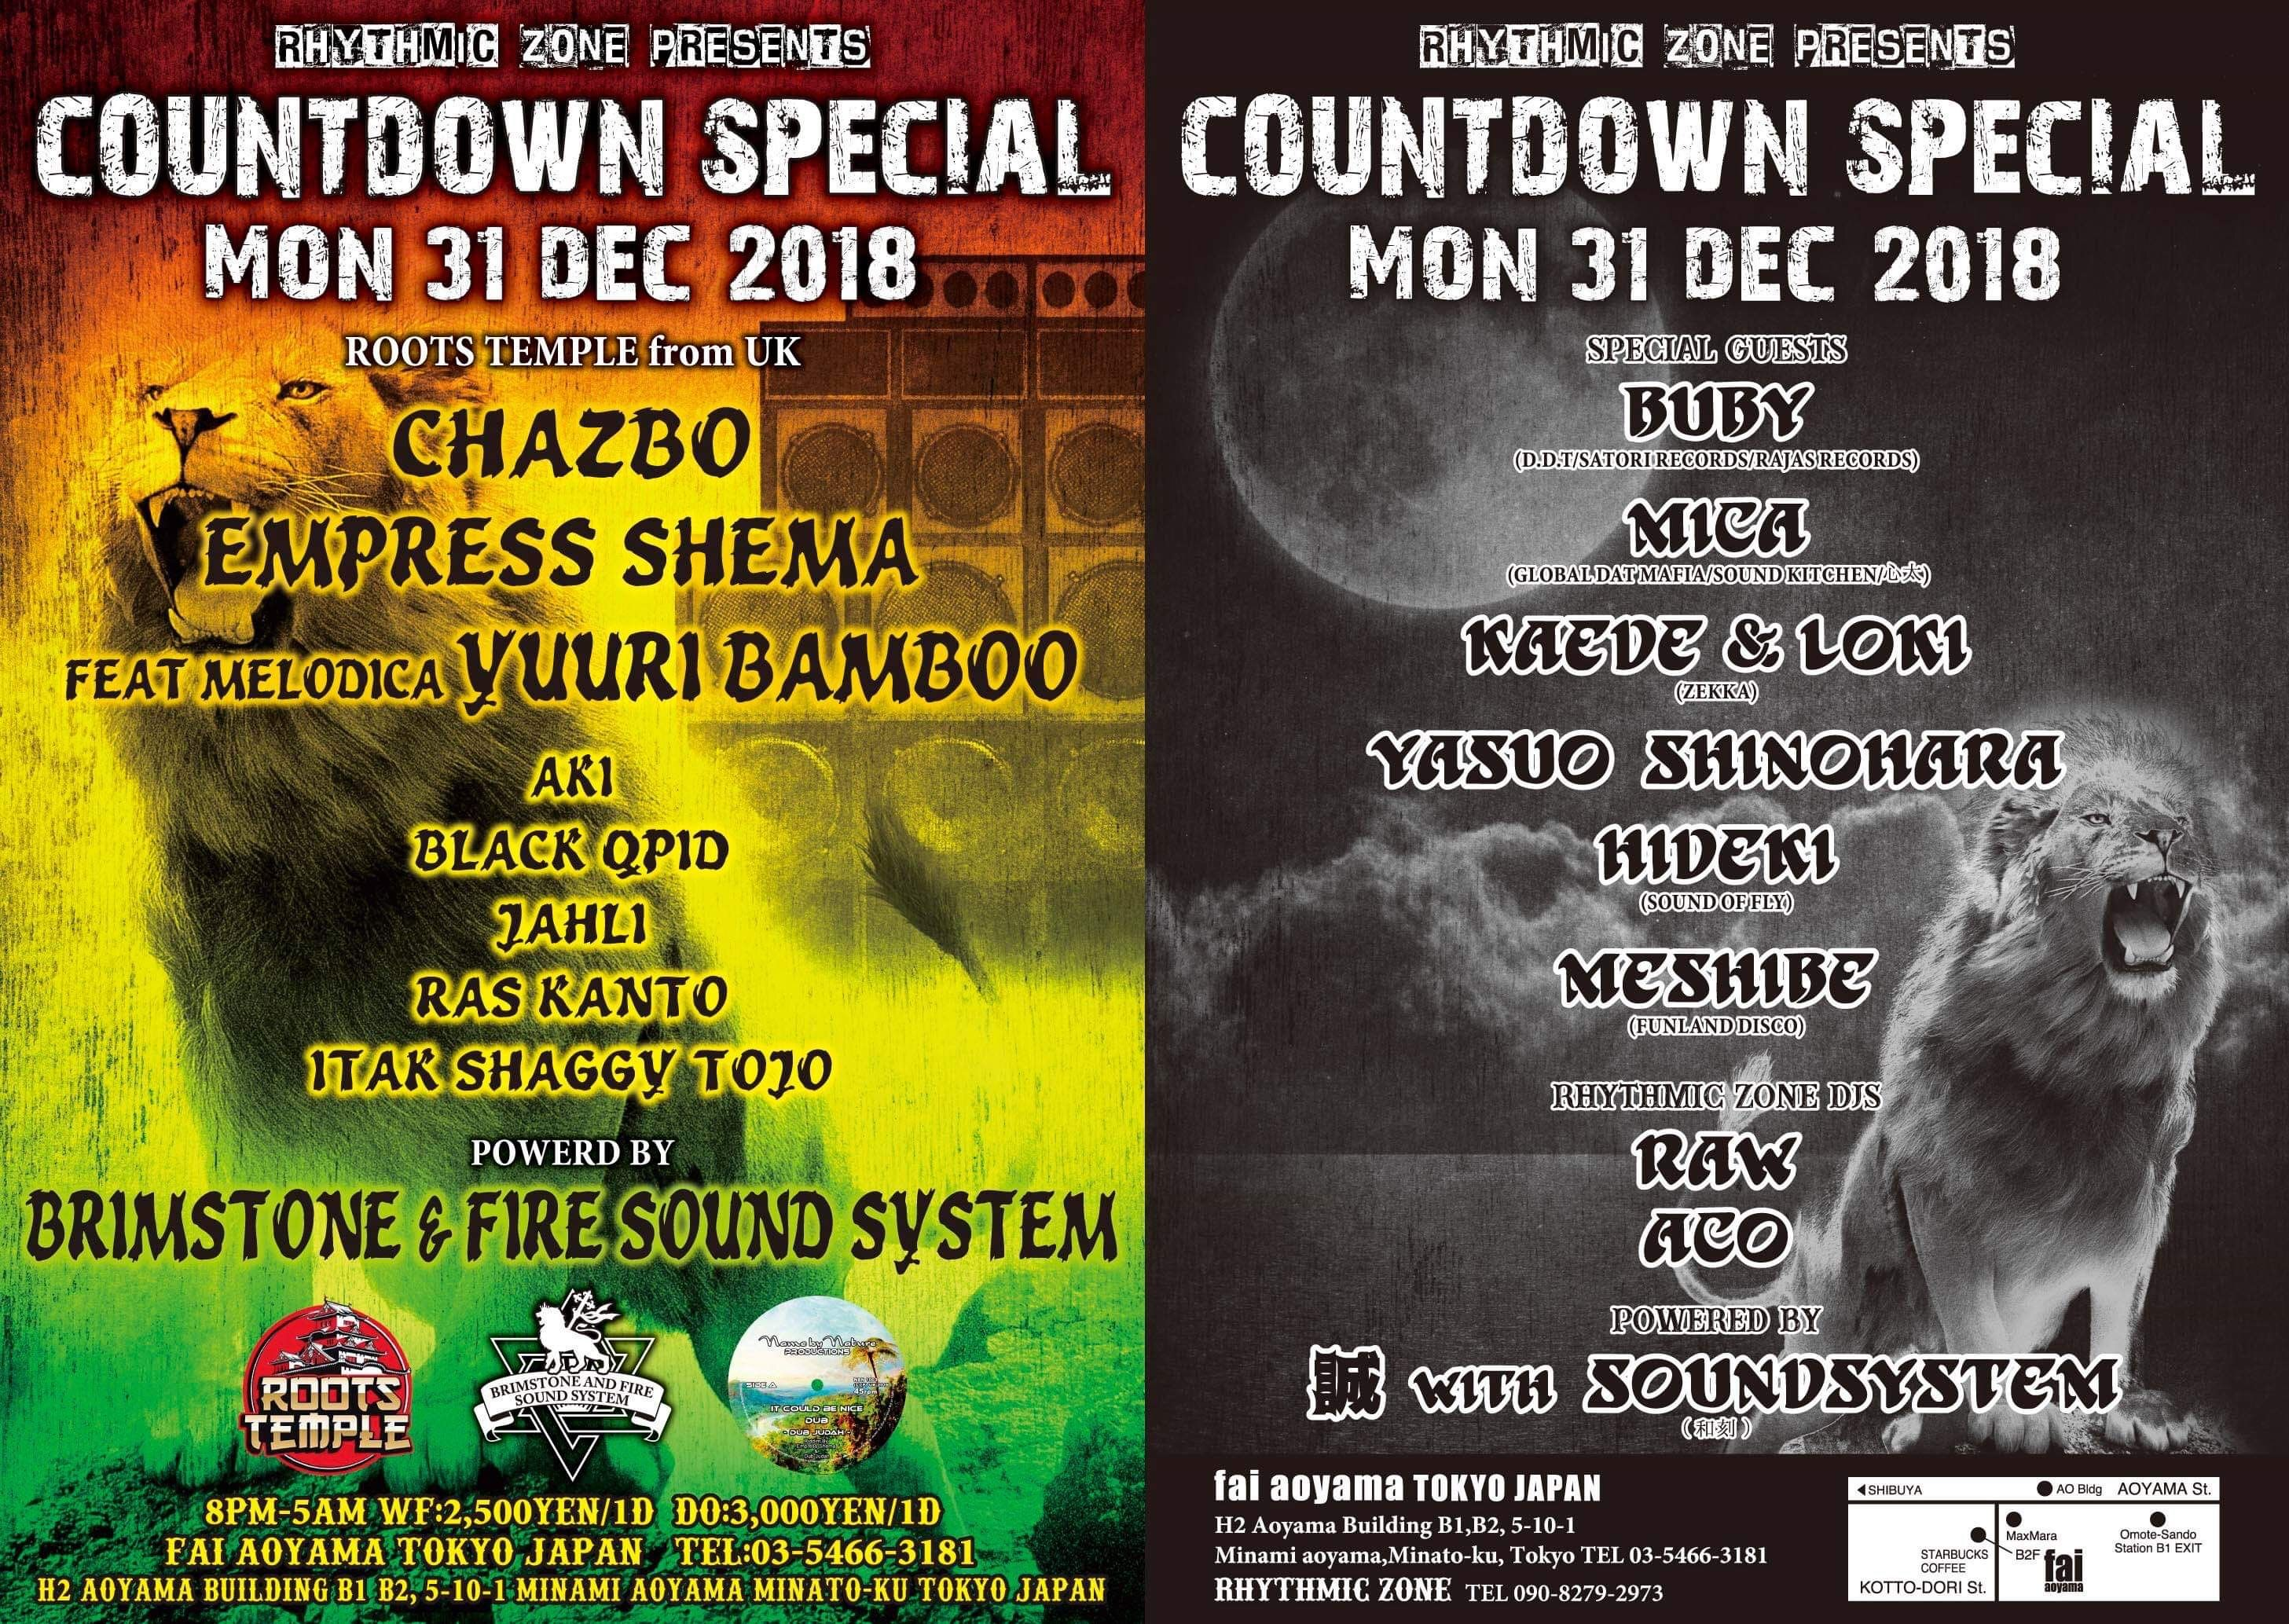 RHYTHMIC ZONE PRESENTS COUNTDOWN SPECIAL